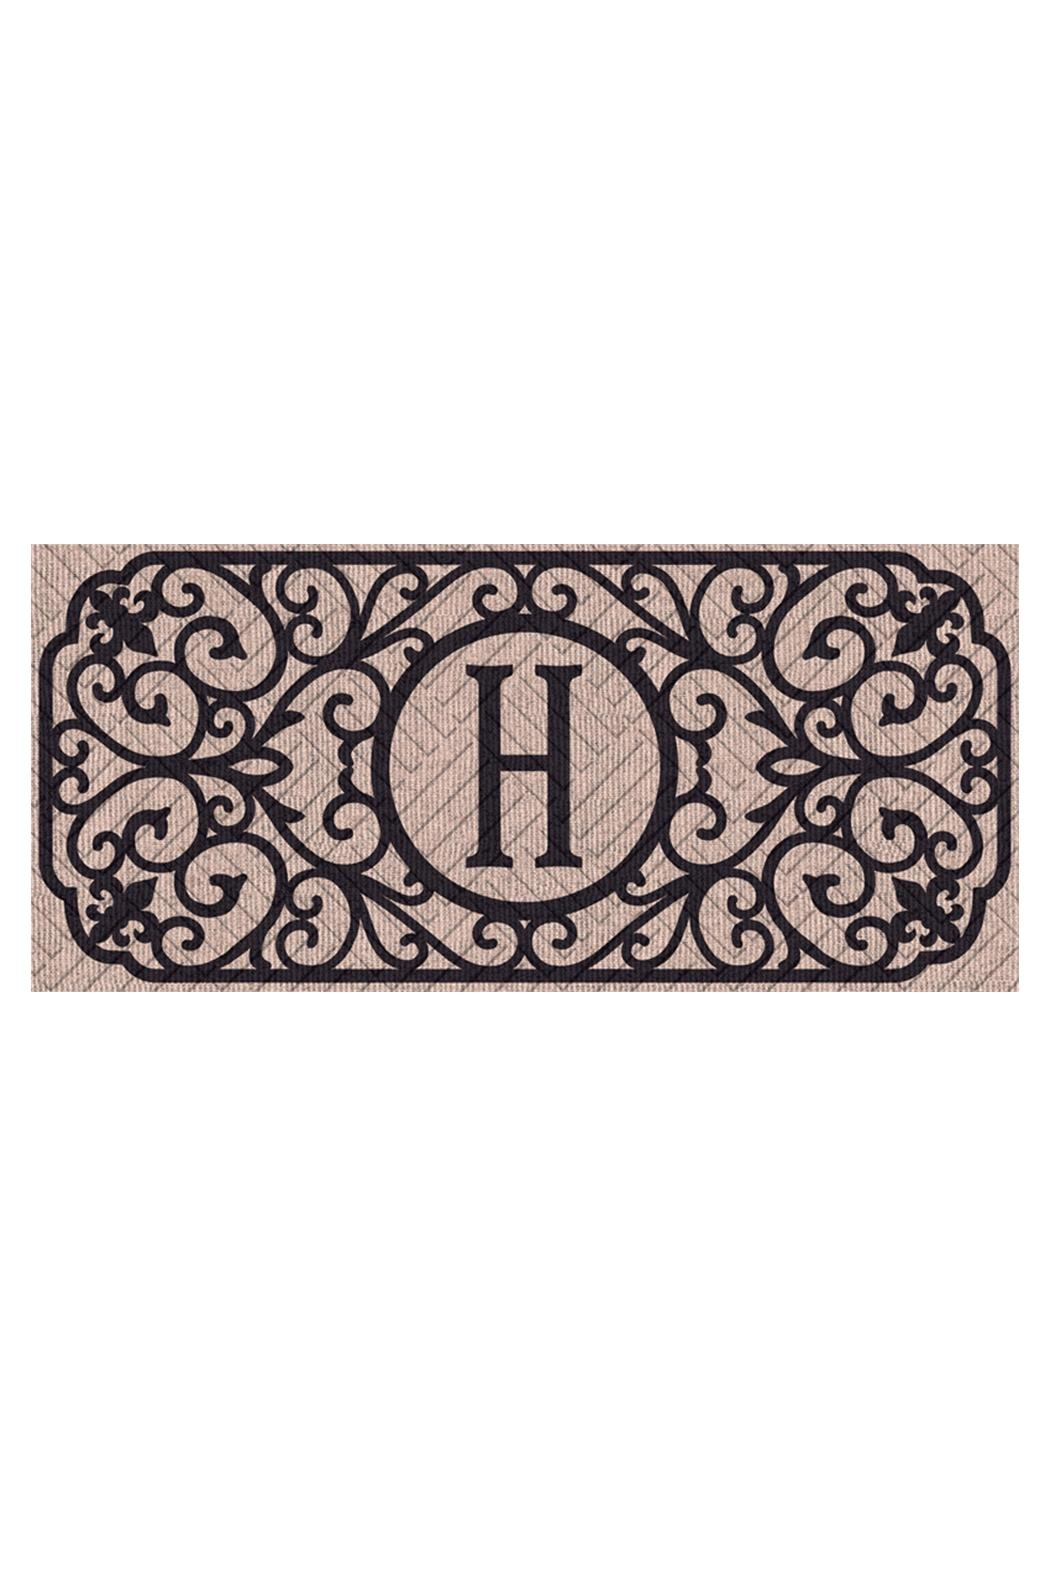 Evergreen Enterprises Monogram H Mat - Main Image